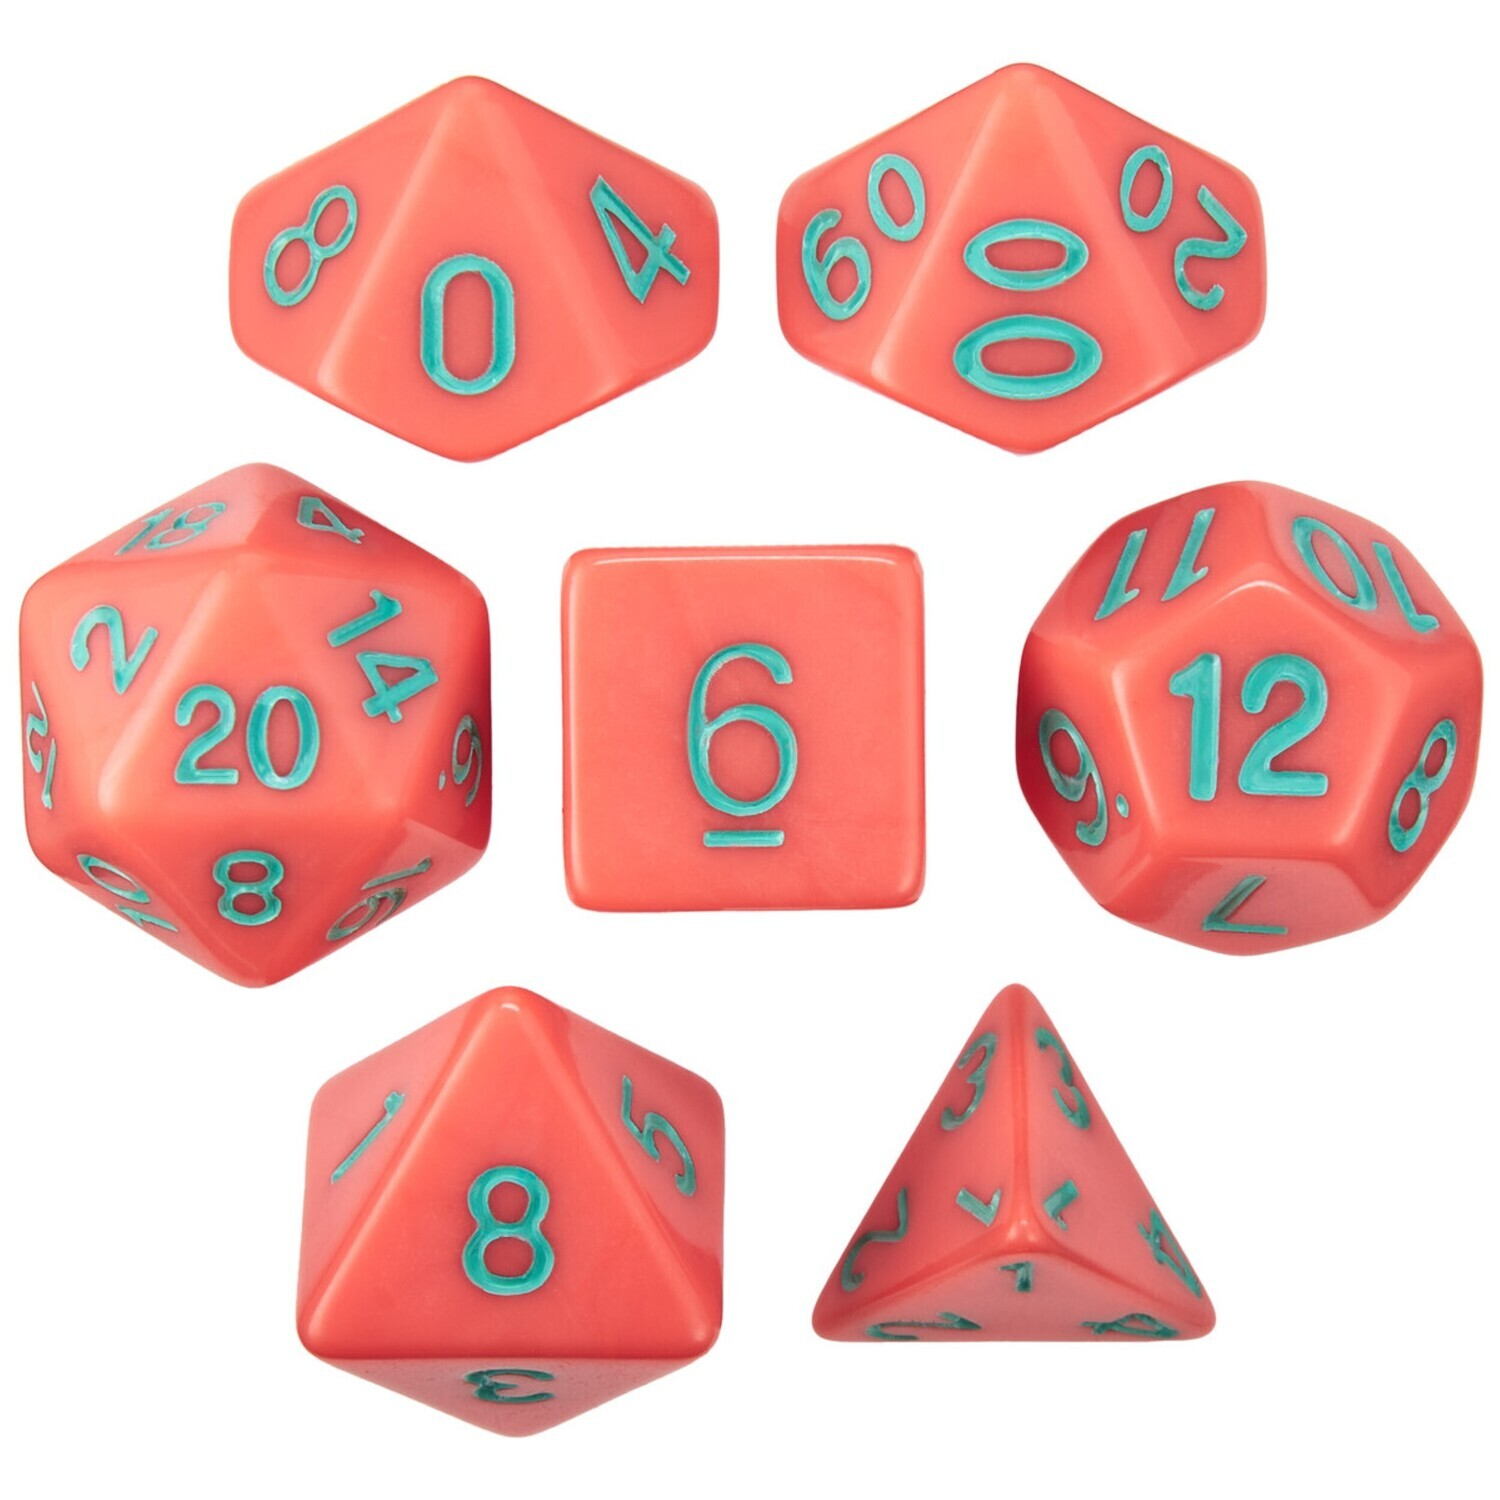 16mm 7 Die Polyhedral Set - Poisoned Apple - Solid Red With Green Paint - RPG Tabletop Games Roleplay Cards CCG Board Random Roll Decision